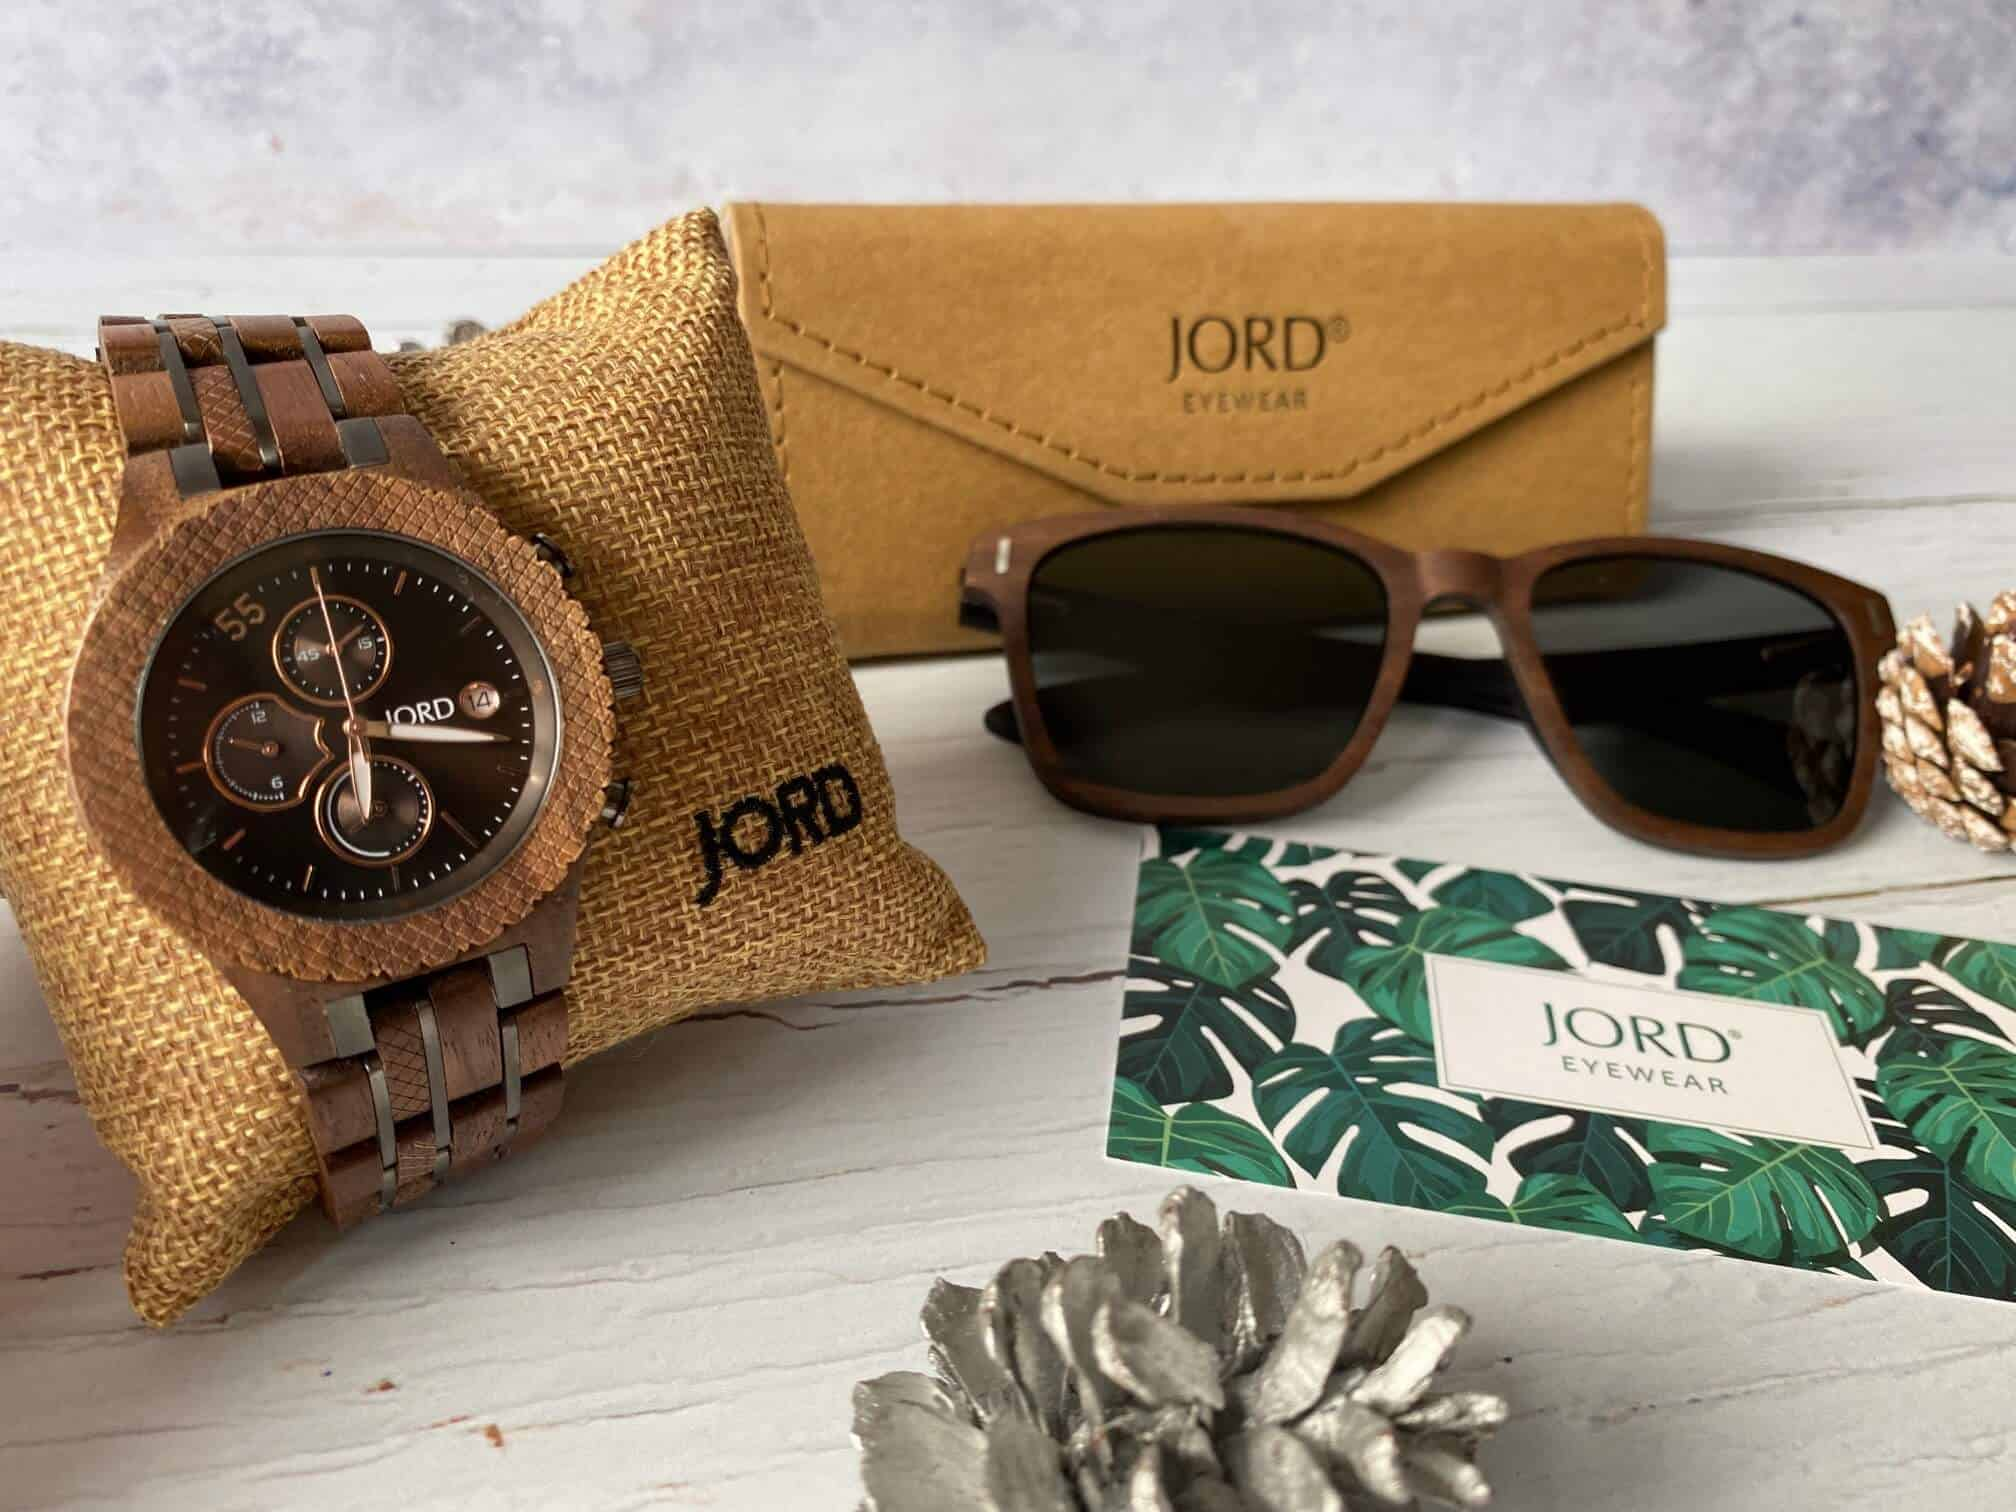 Conway in Walnut and Jet Black and sunglasses - JORD gift set